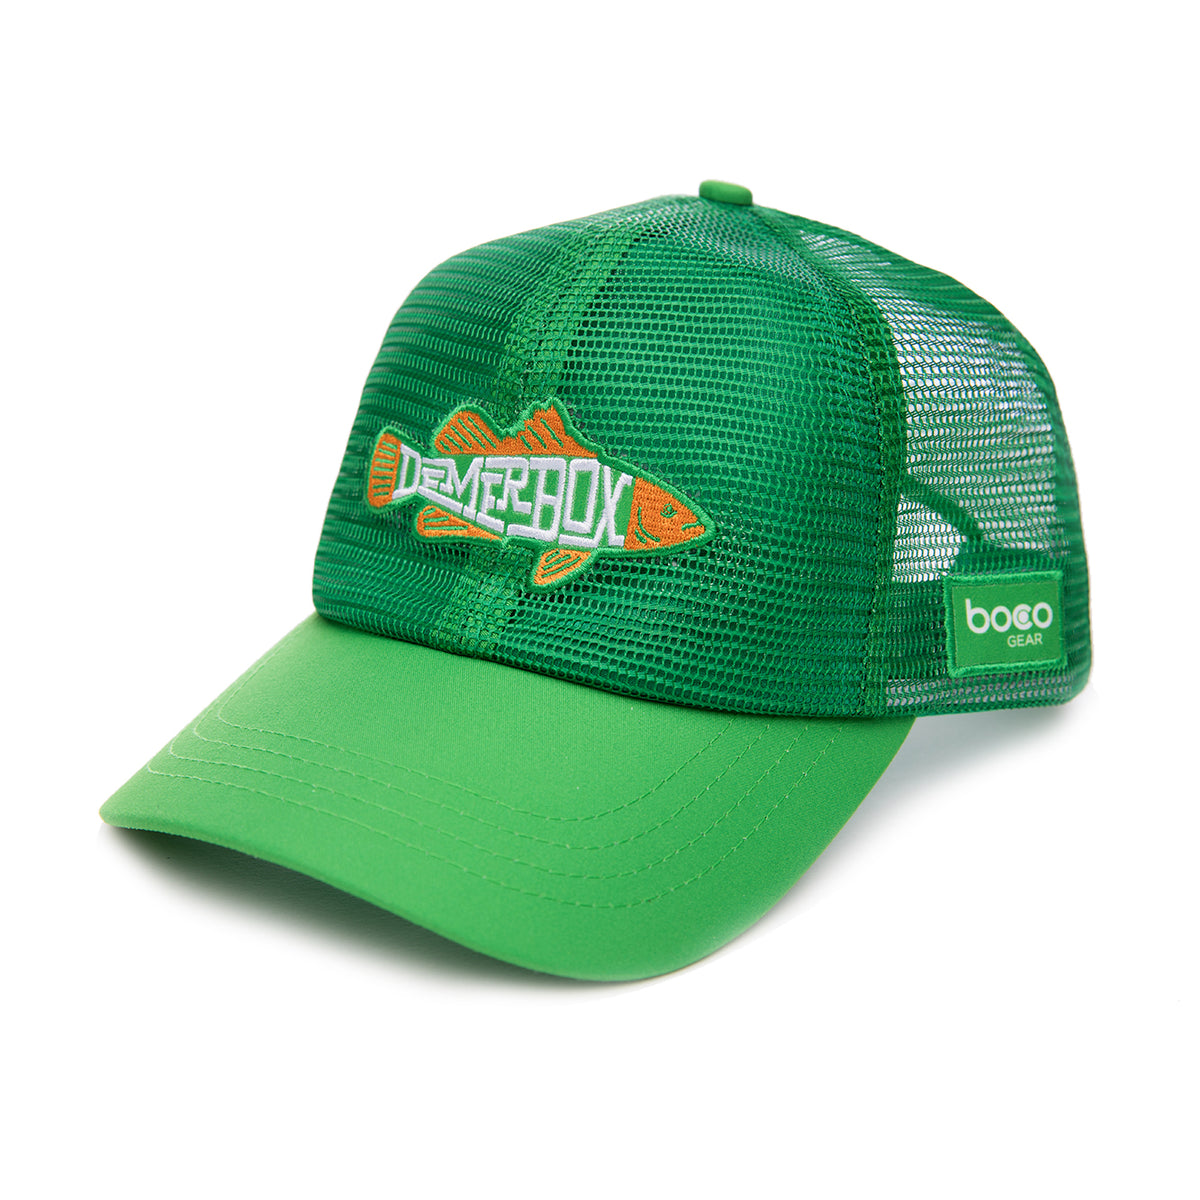 Green all mesh Fish Hat